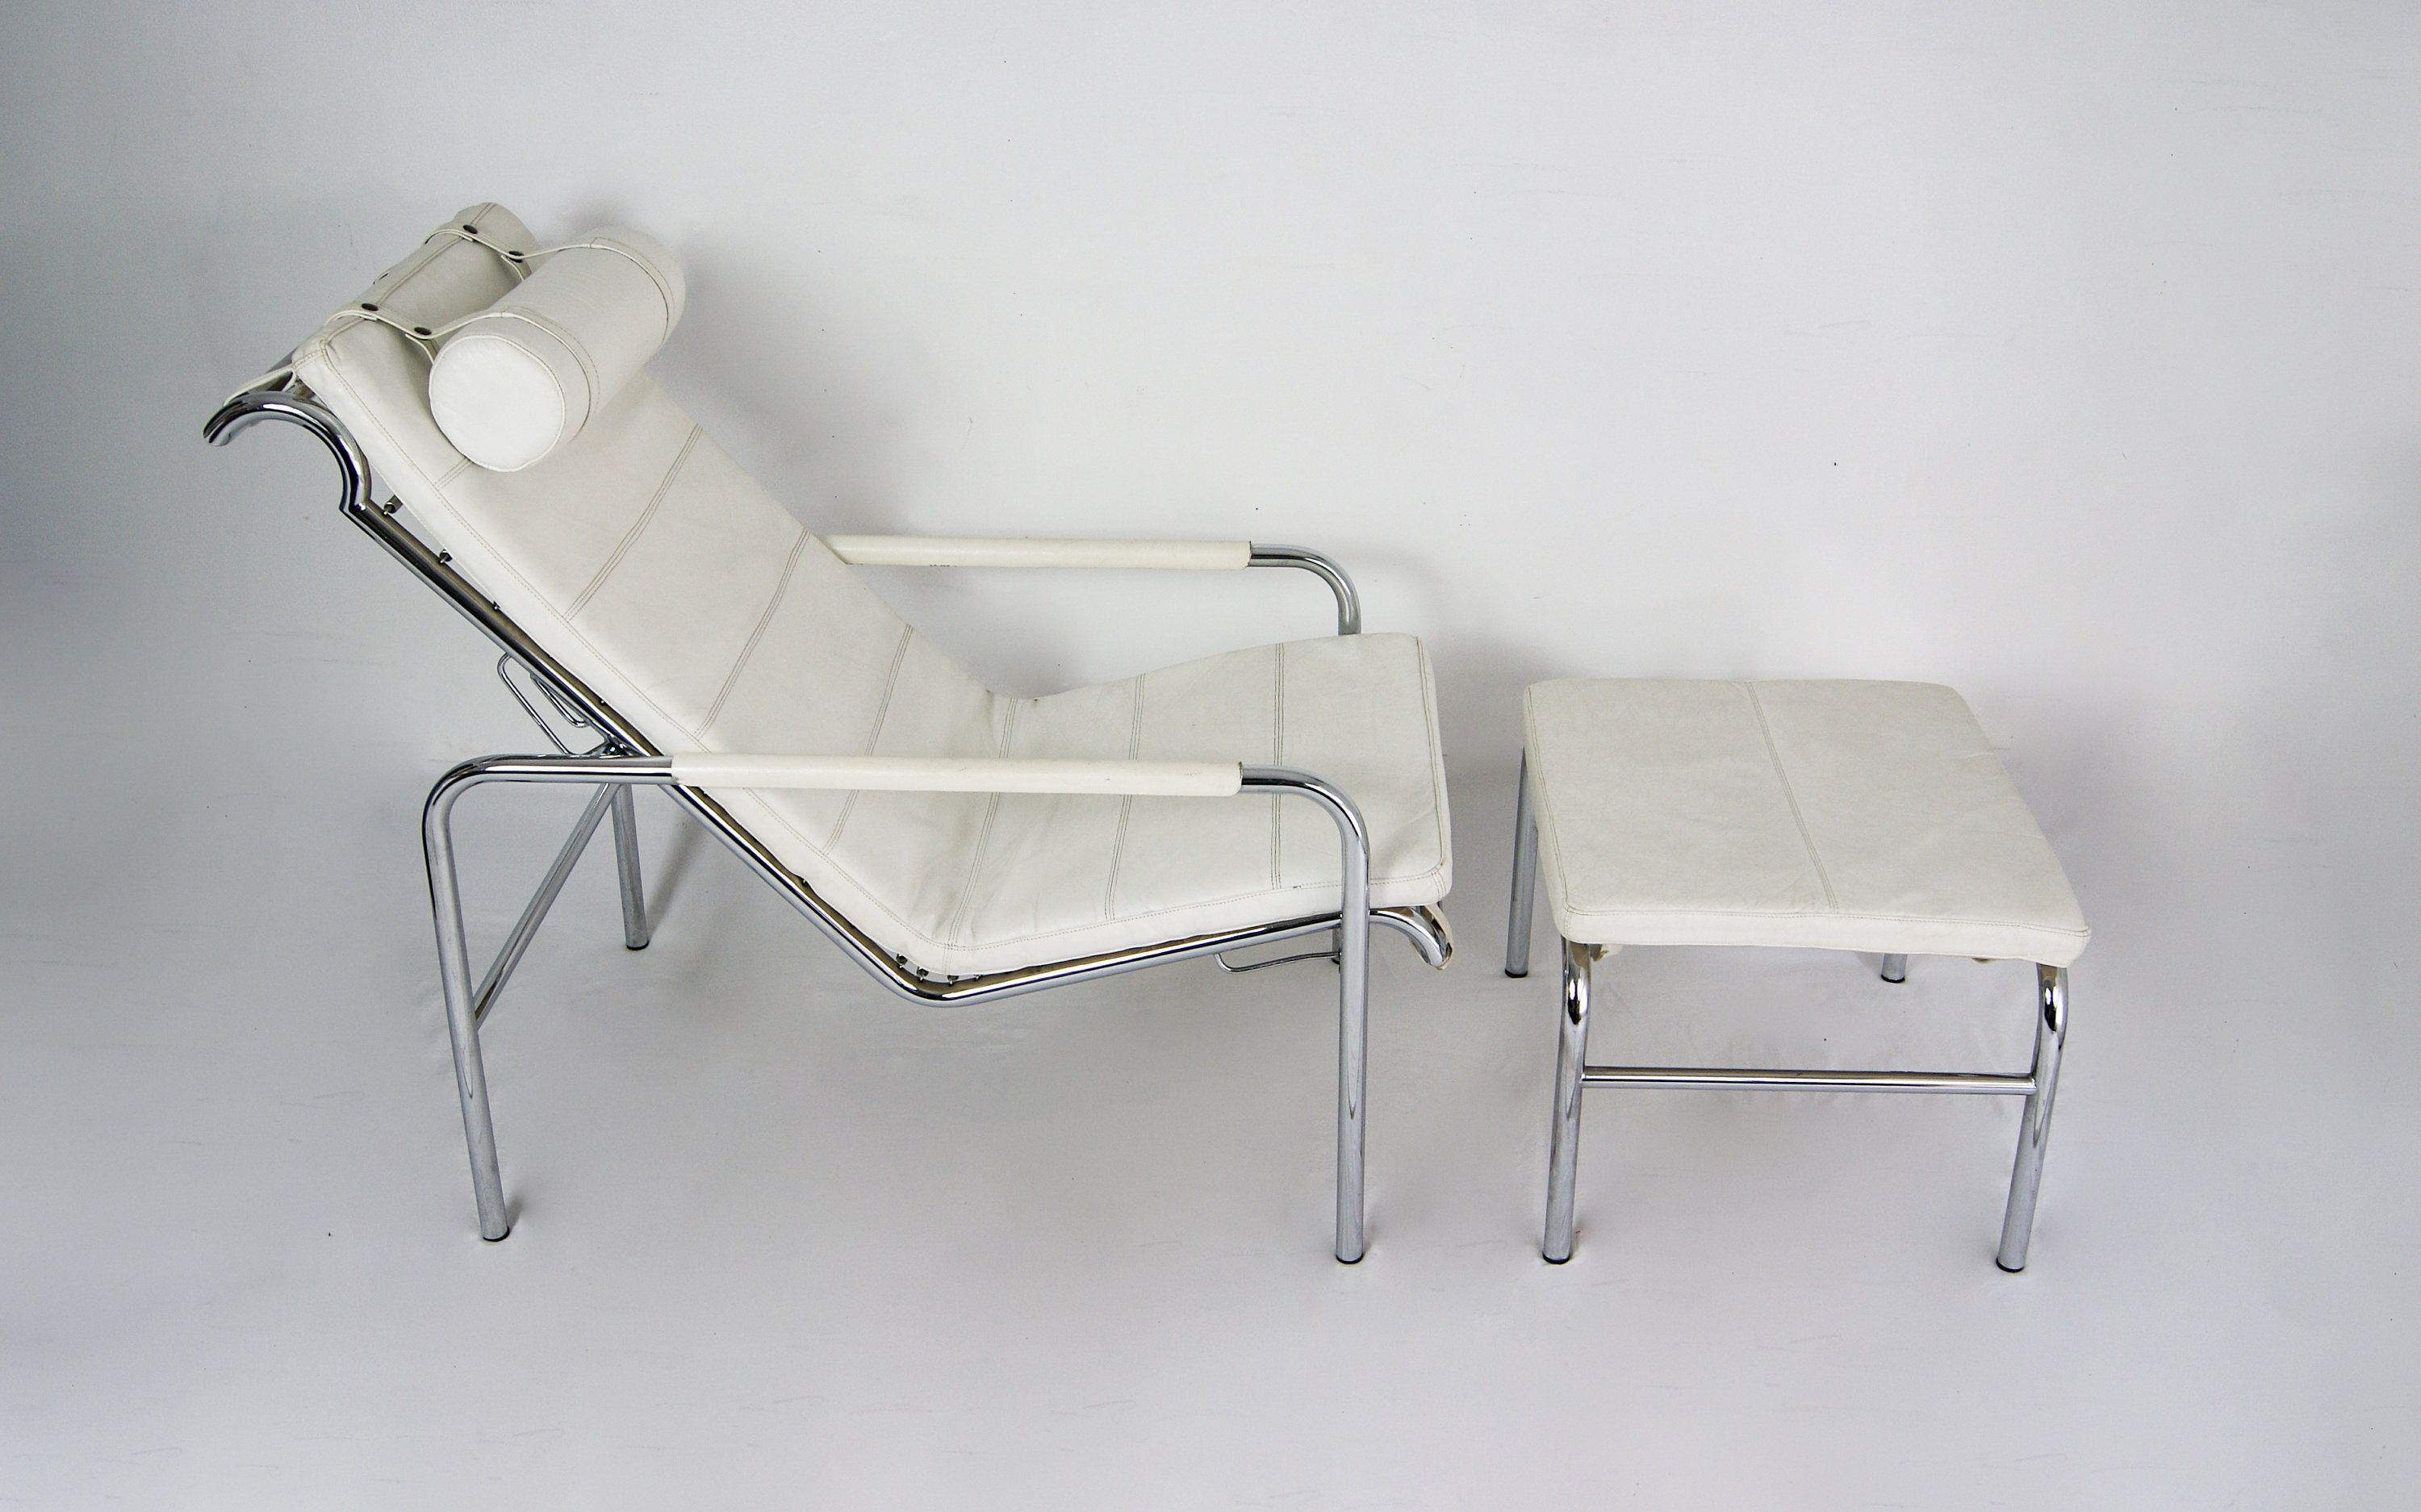 A 1935 Gabriele Mucchi Design For Zanotta Genni Reclining Lounge Chair Ottoman Footstool Chair And Ottoman Clean White Leather Ottoman Footstool